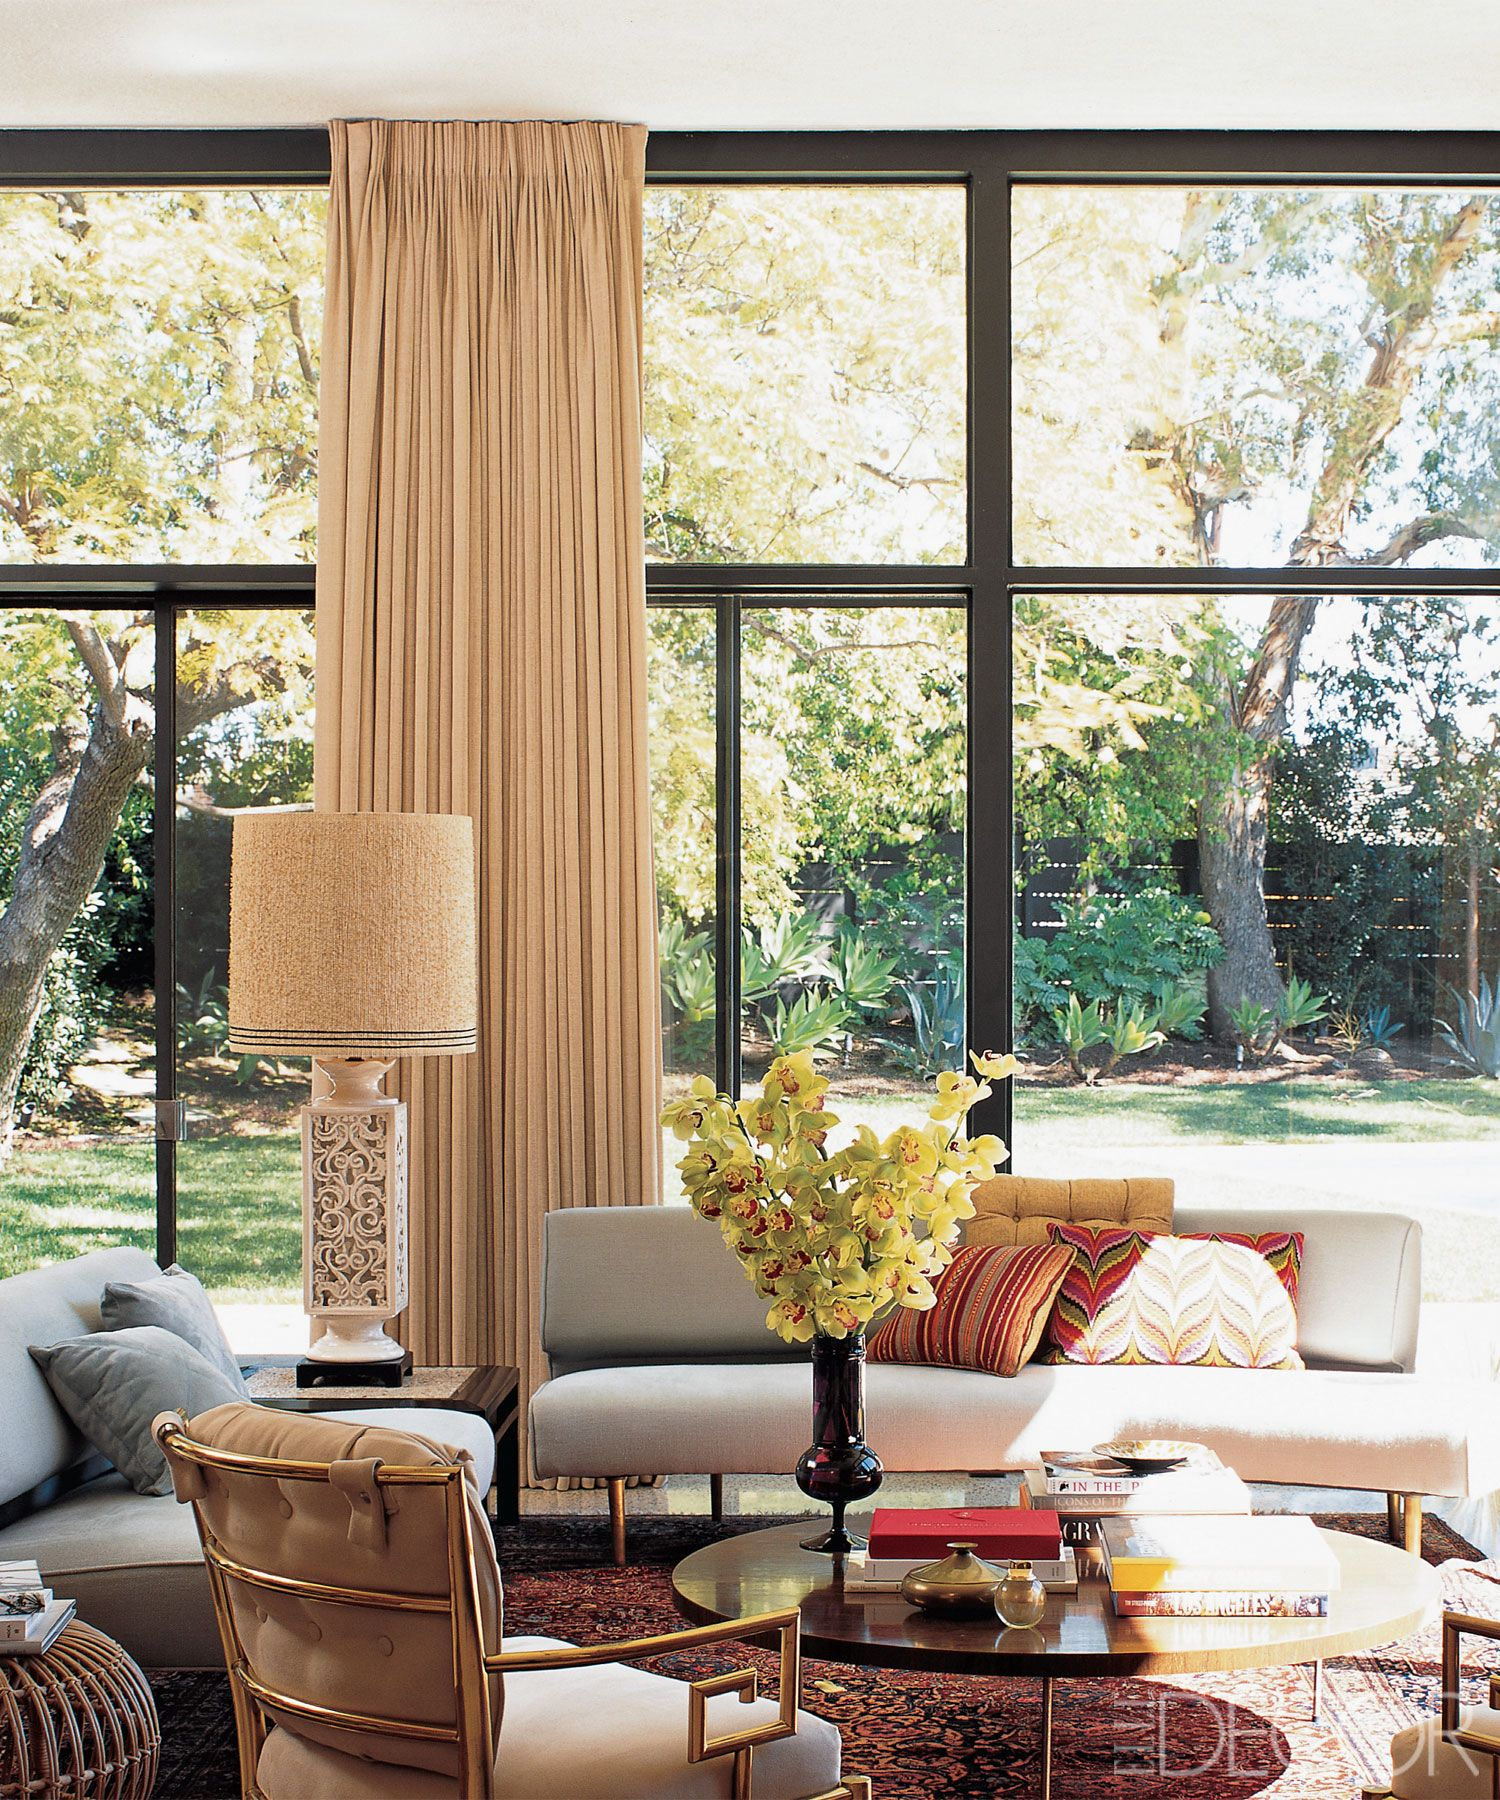 10 Easy Ways to Add a Mid-Century Modern Style to Your Home